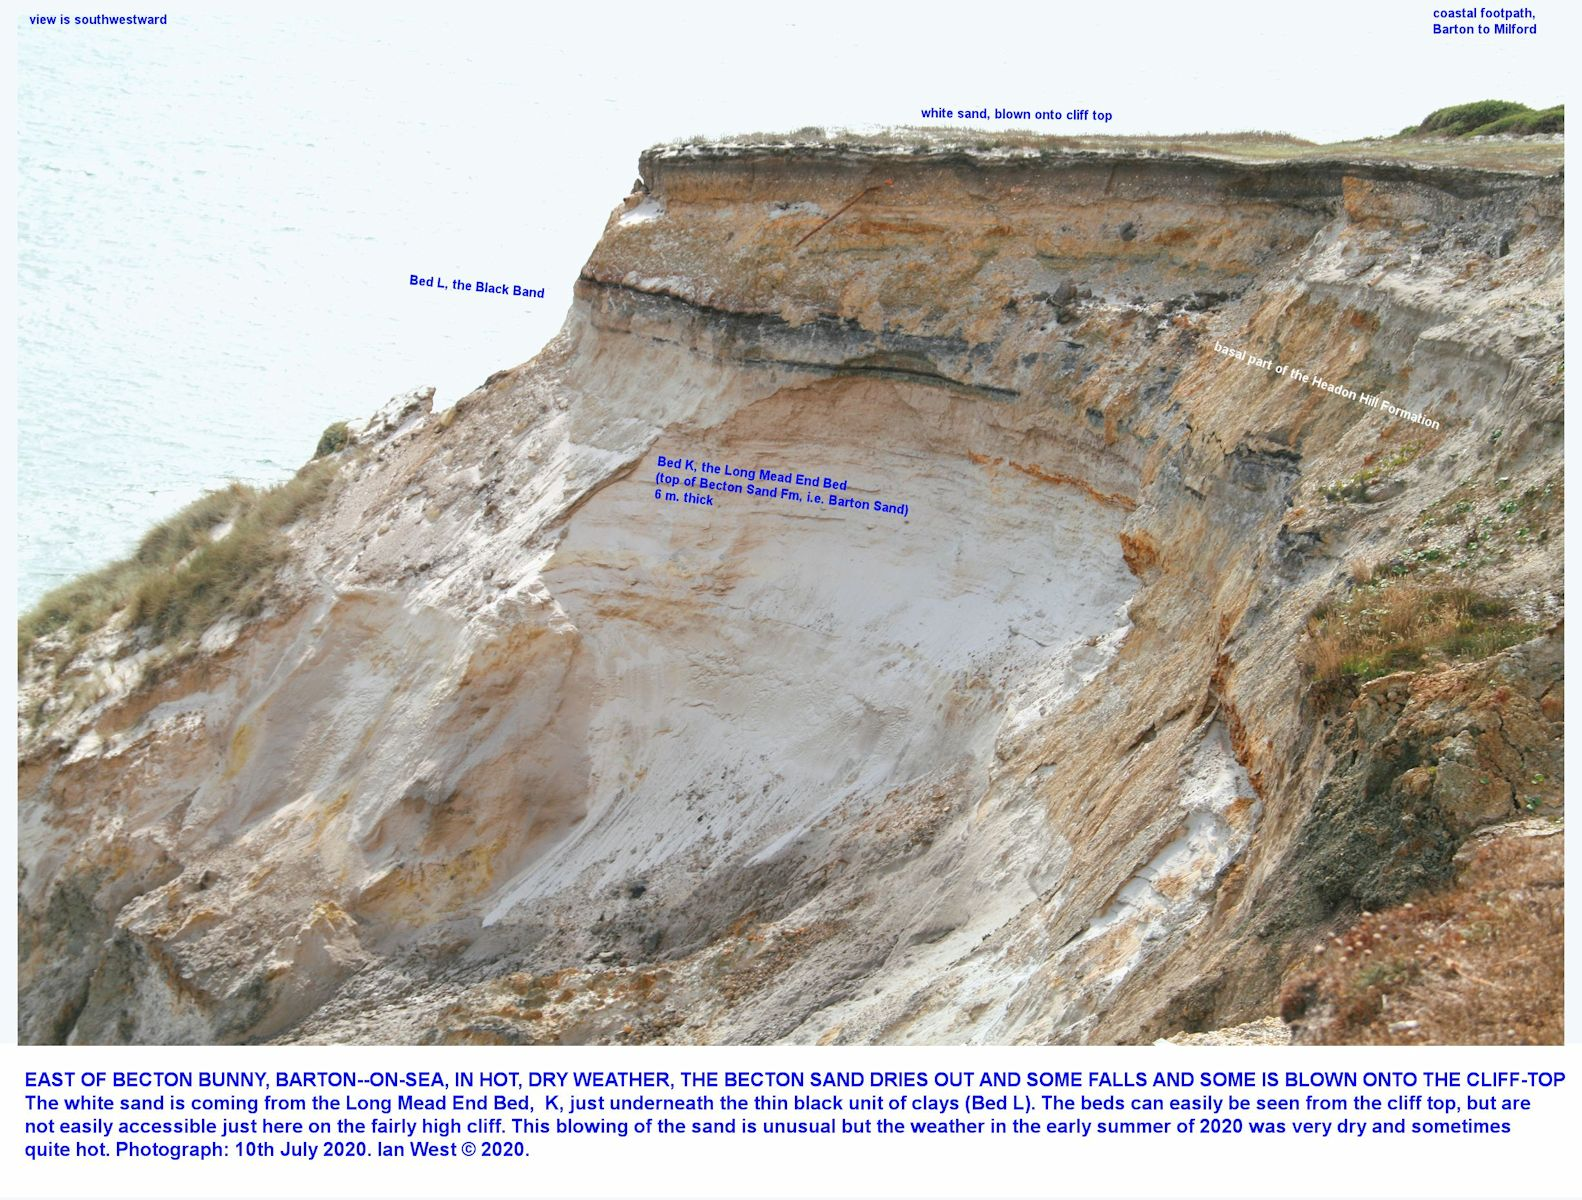 The fine, white quartz sand of the Becton Sand Formation, as seen from the cliff top and looking westward, 10th July 2020